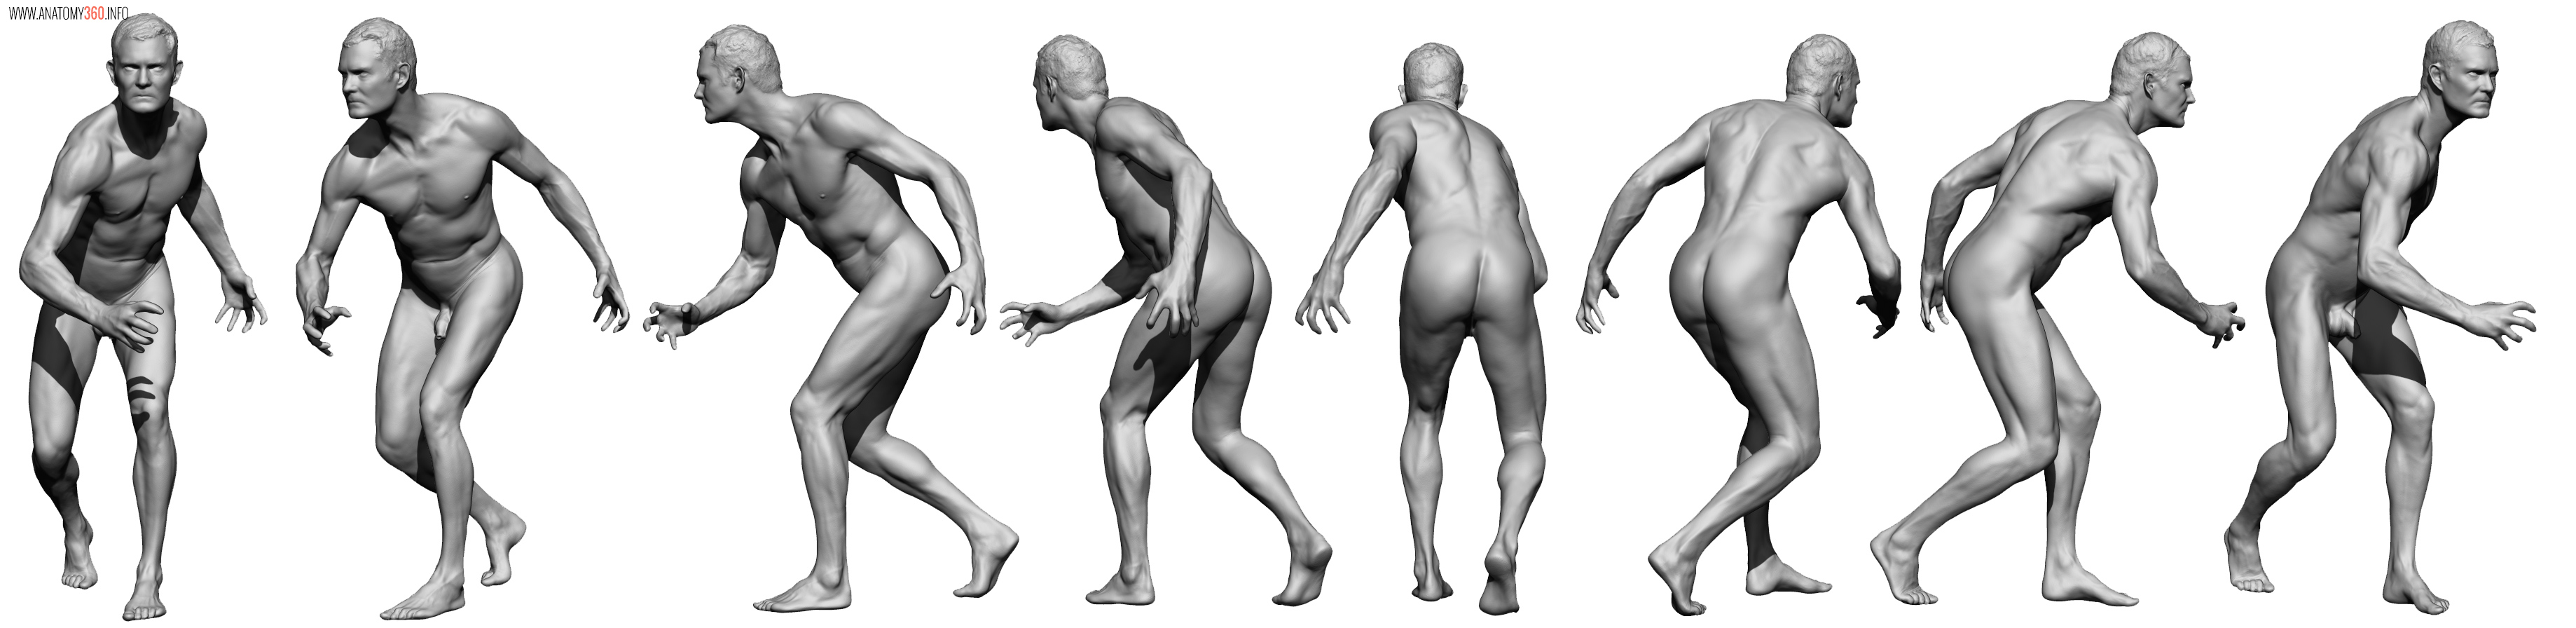 AnatomyReference_011